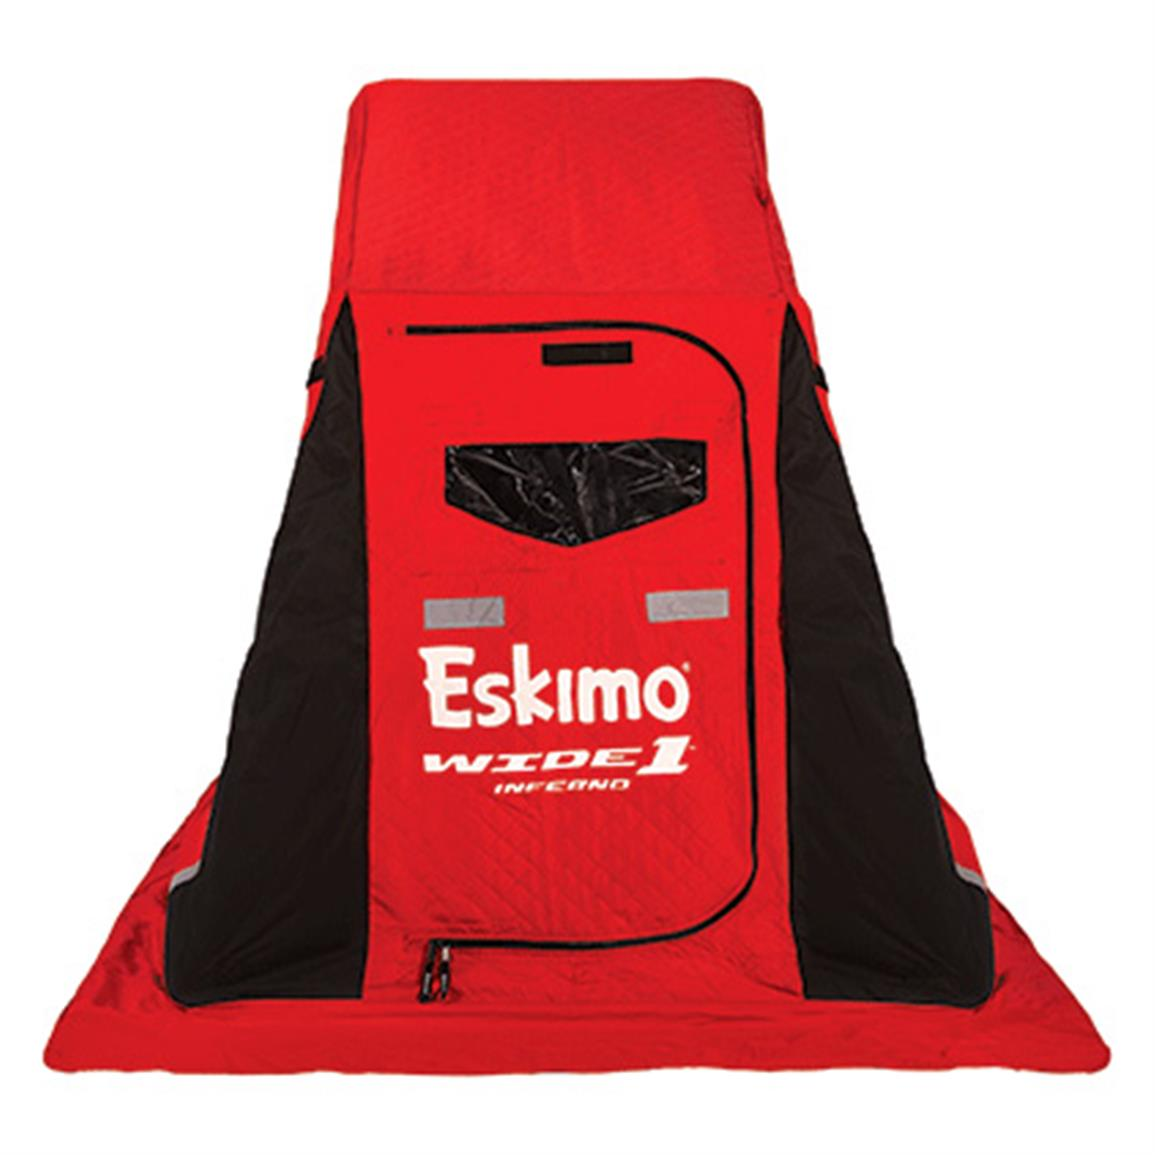 Eskimo WIDE 1 Inferno Flip-style 1-person Ice Shelter